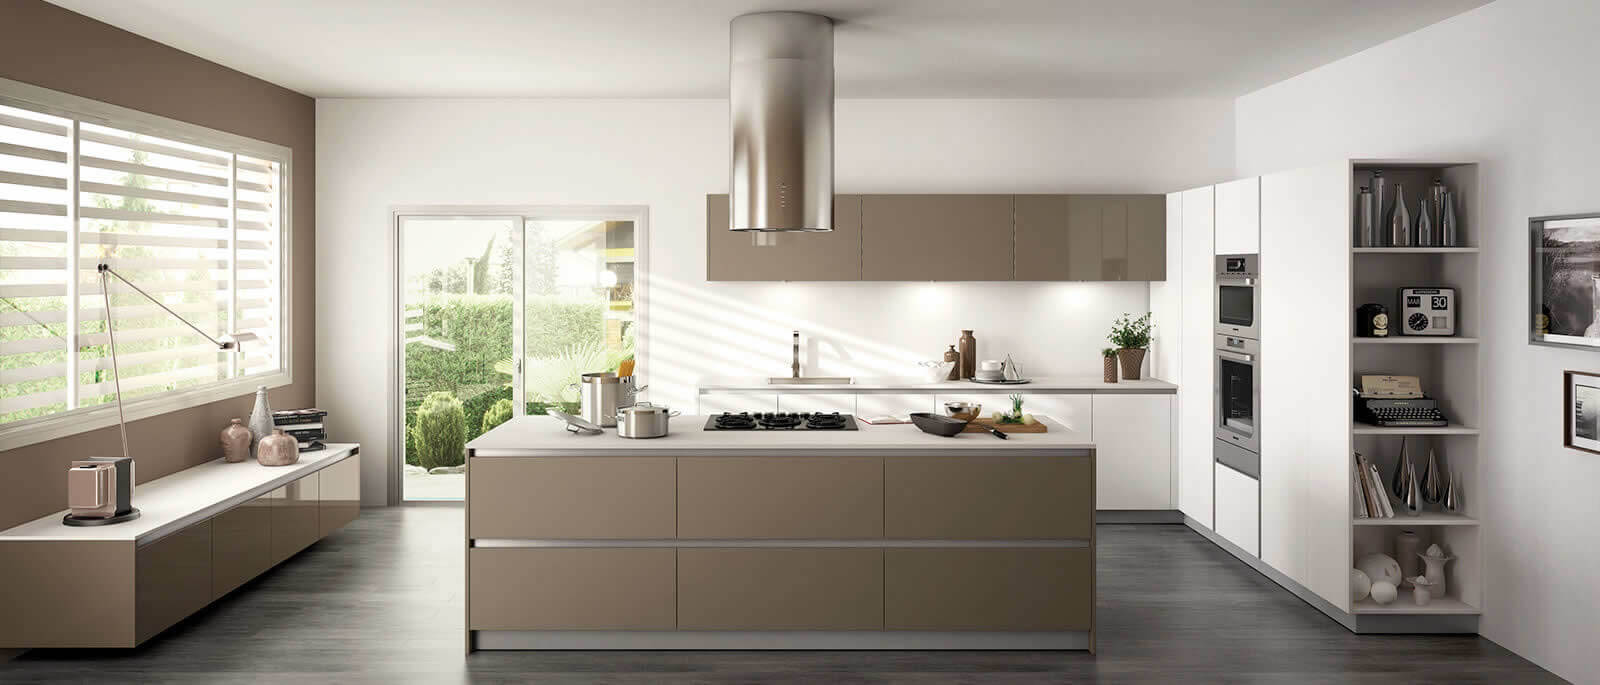 Nolan Kitchens - High Gloss Kitchens